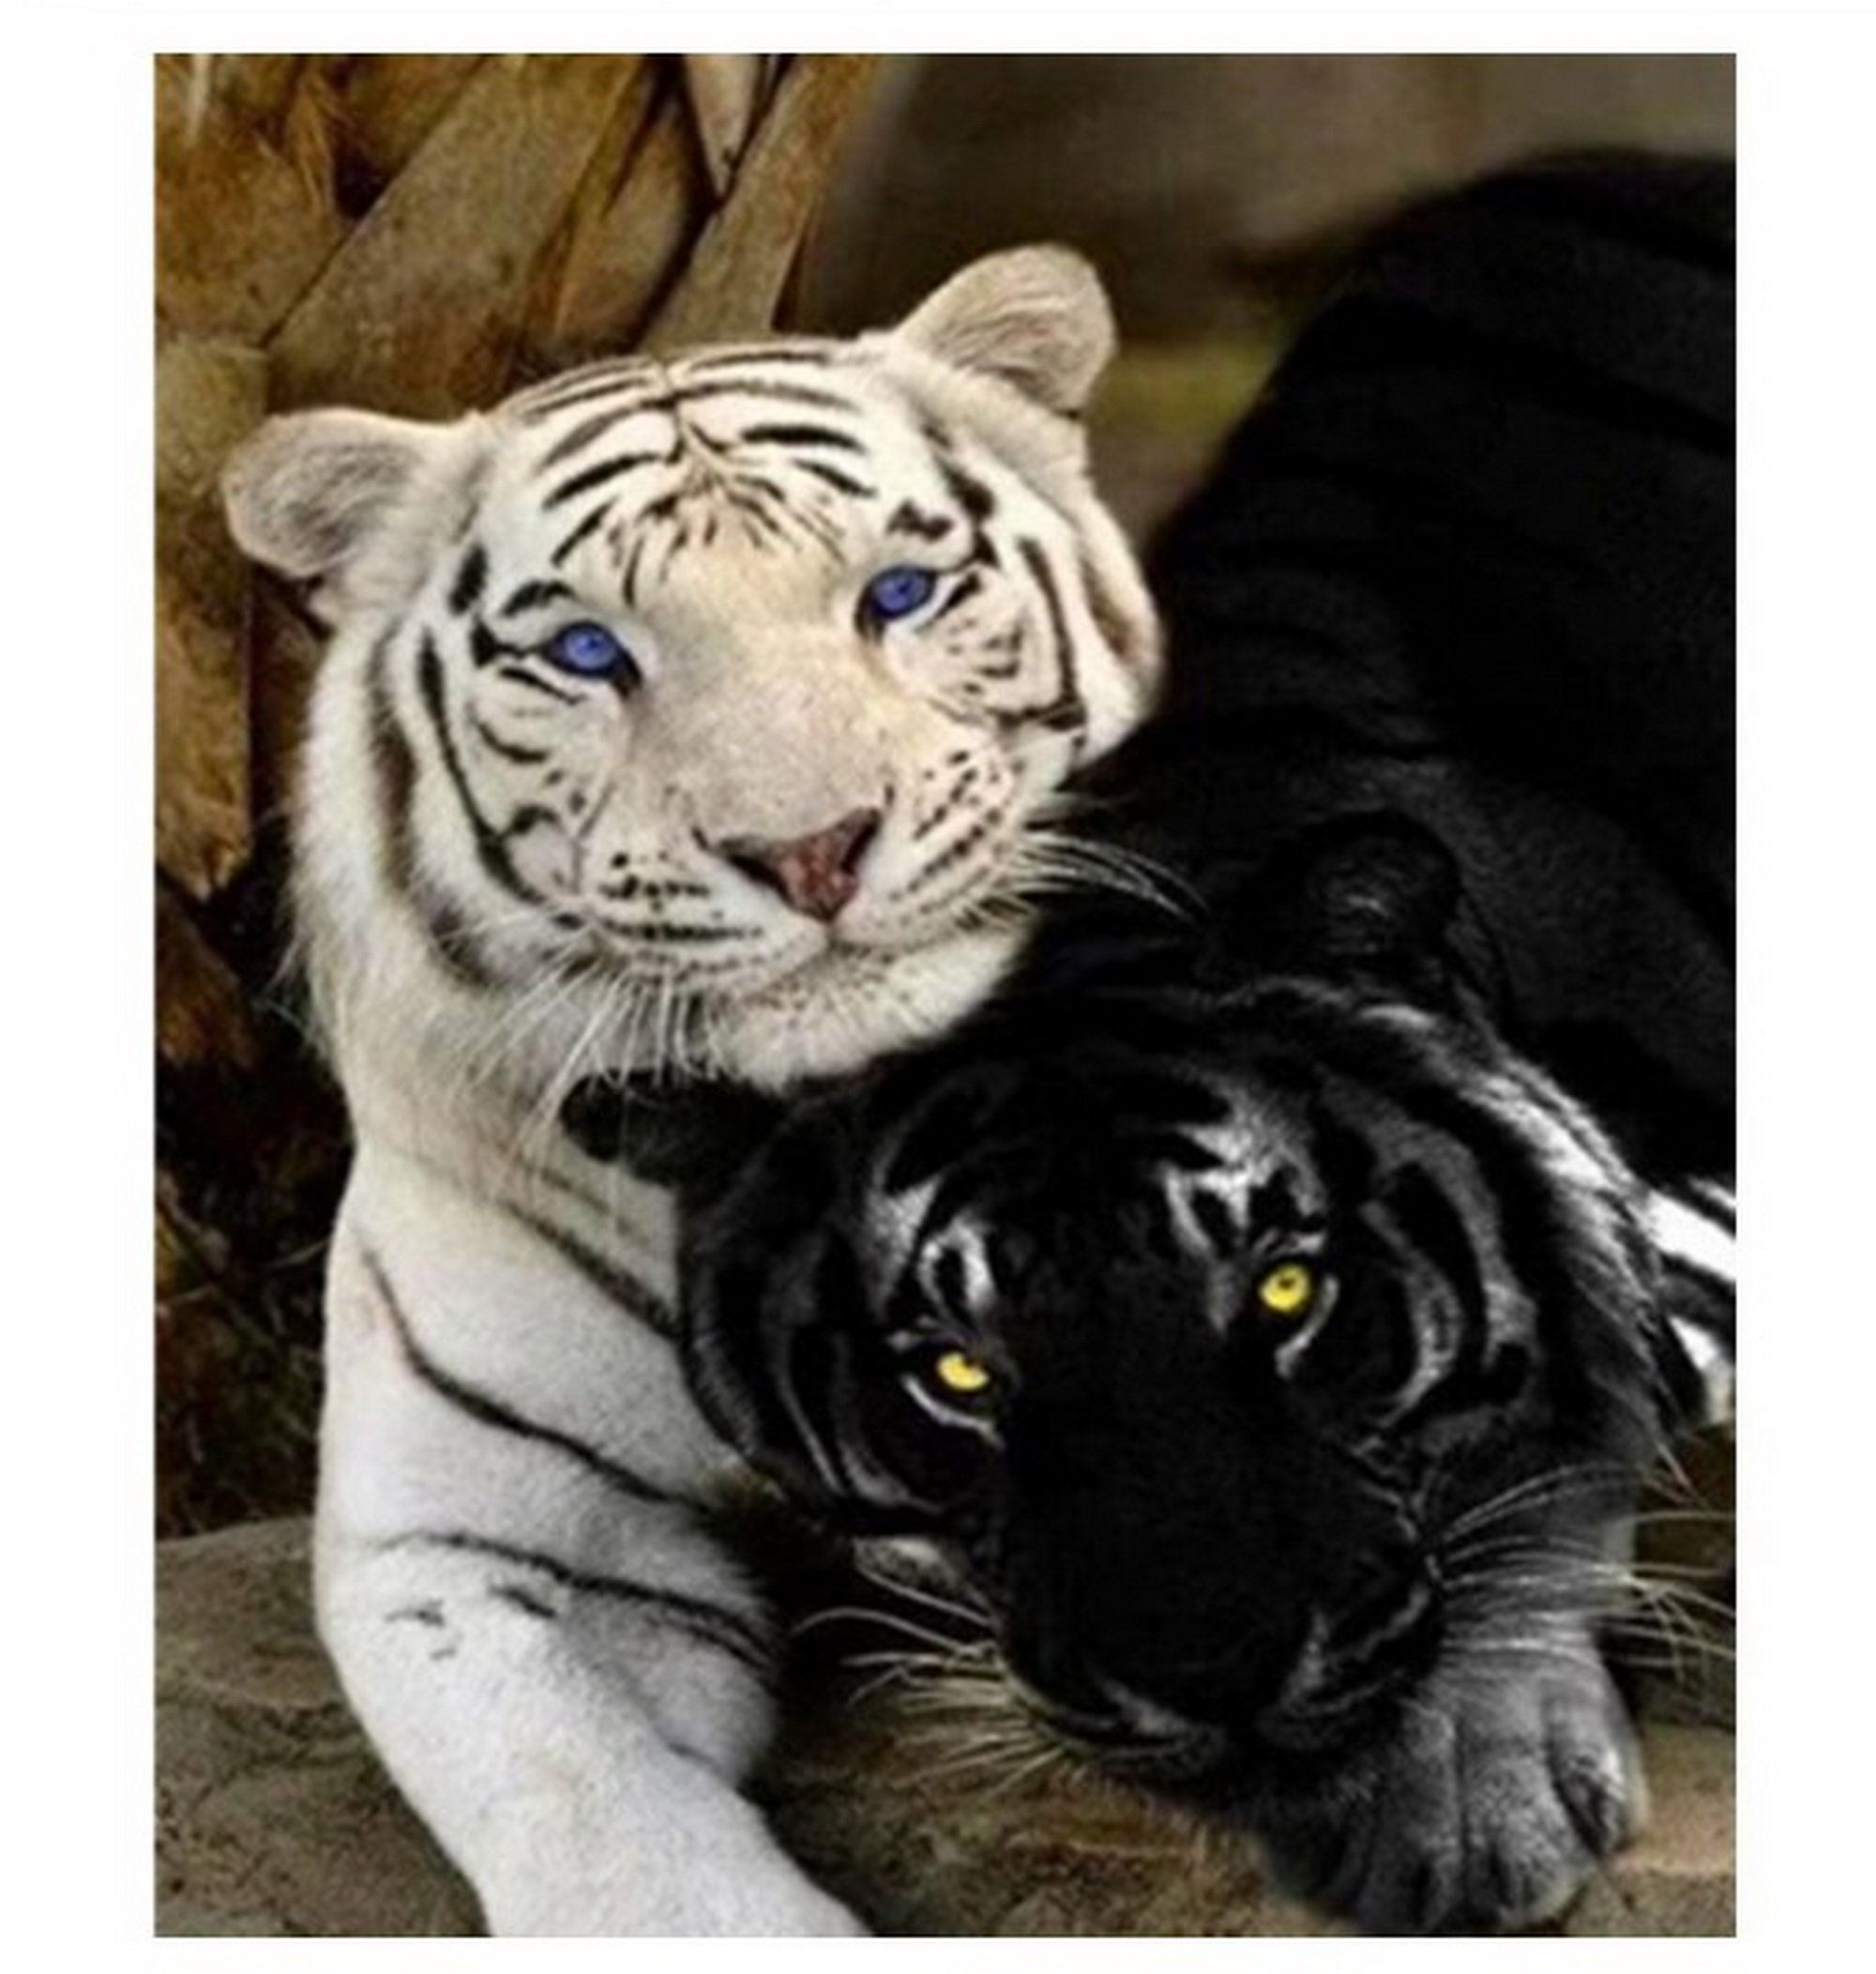 Tiger White Black Paint by Number kit, Home Decoration, Color Number kit, Modern Paint by Number, DIY Painting On Canvas, DIY Painting Kit